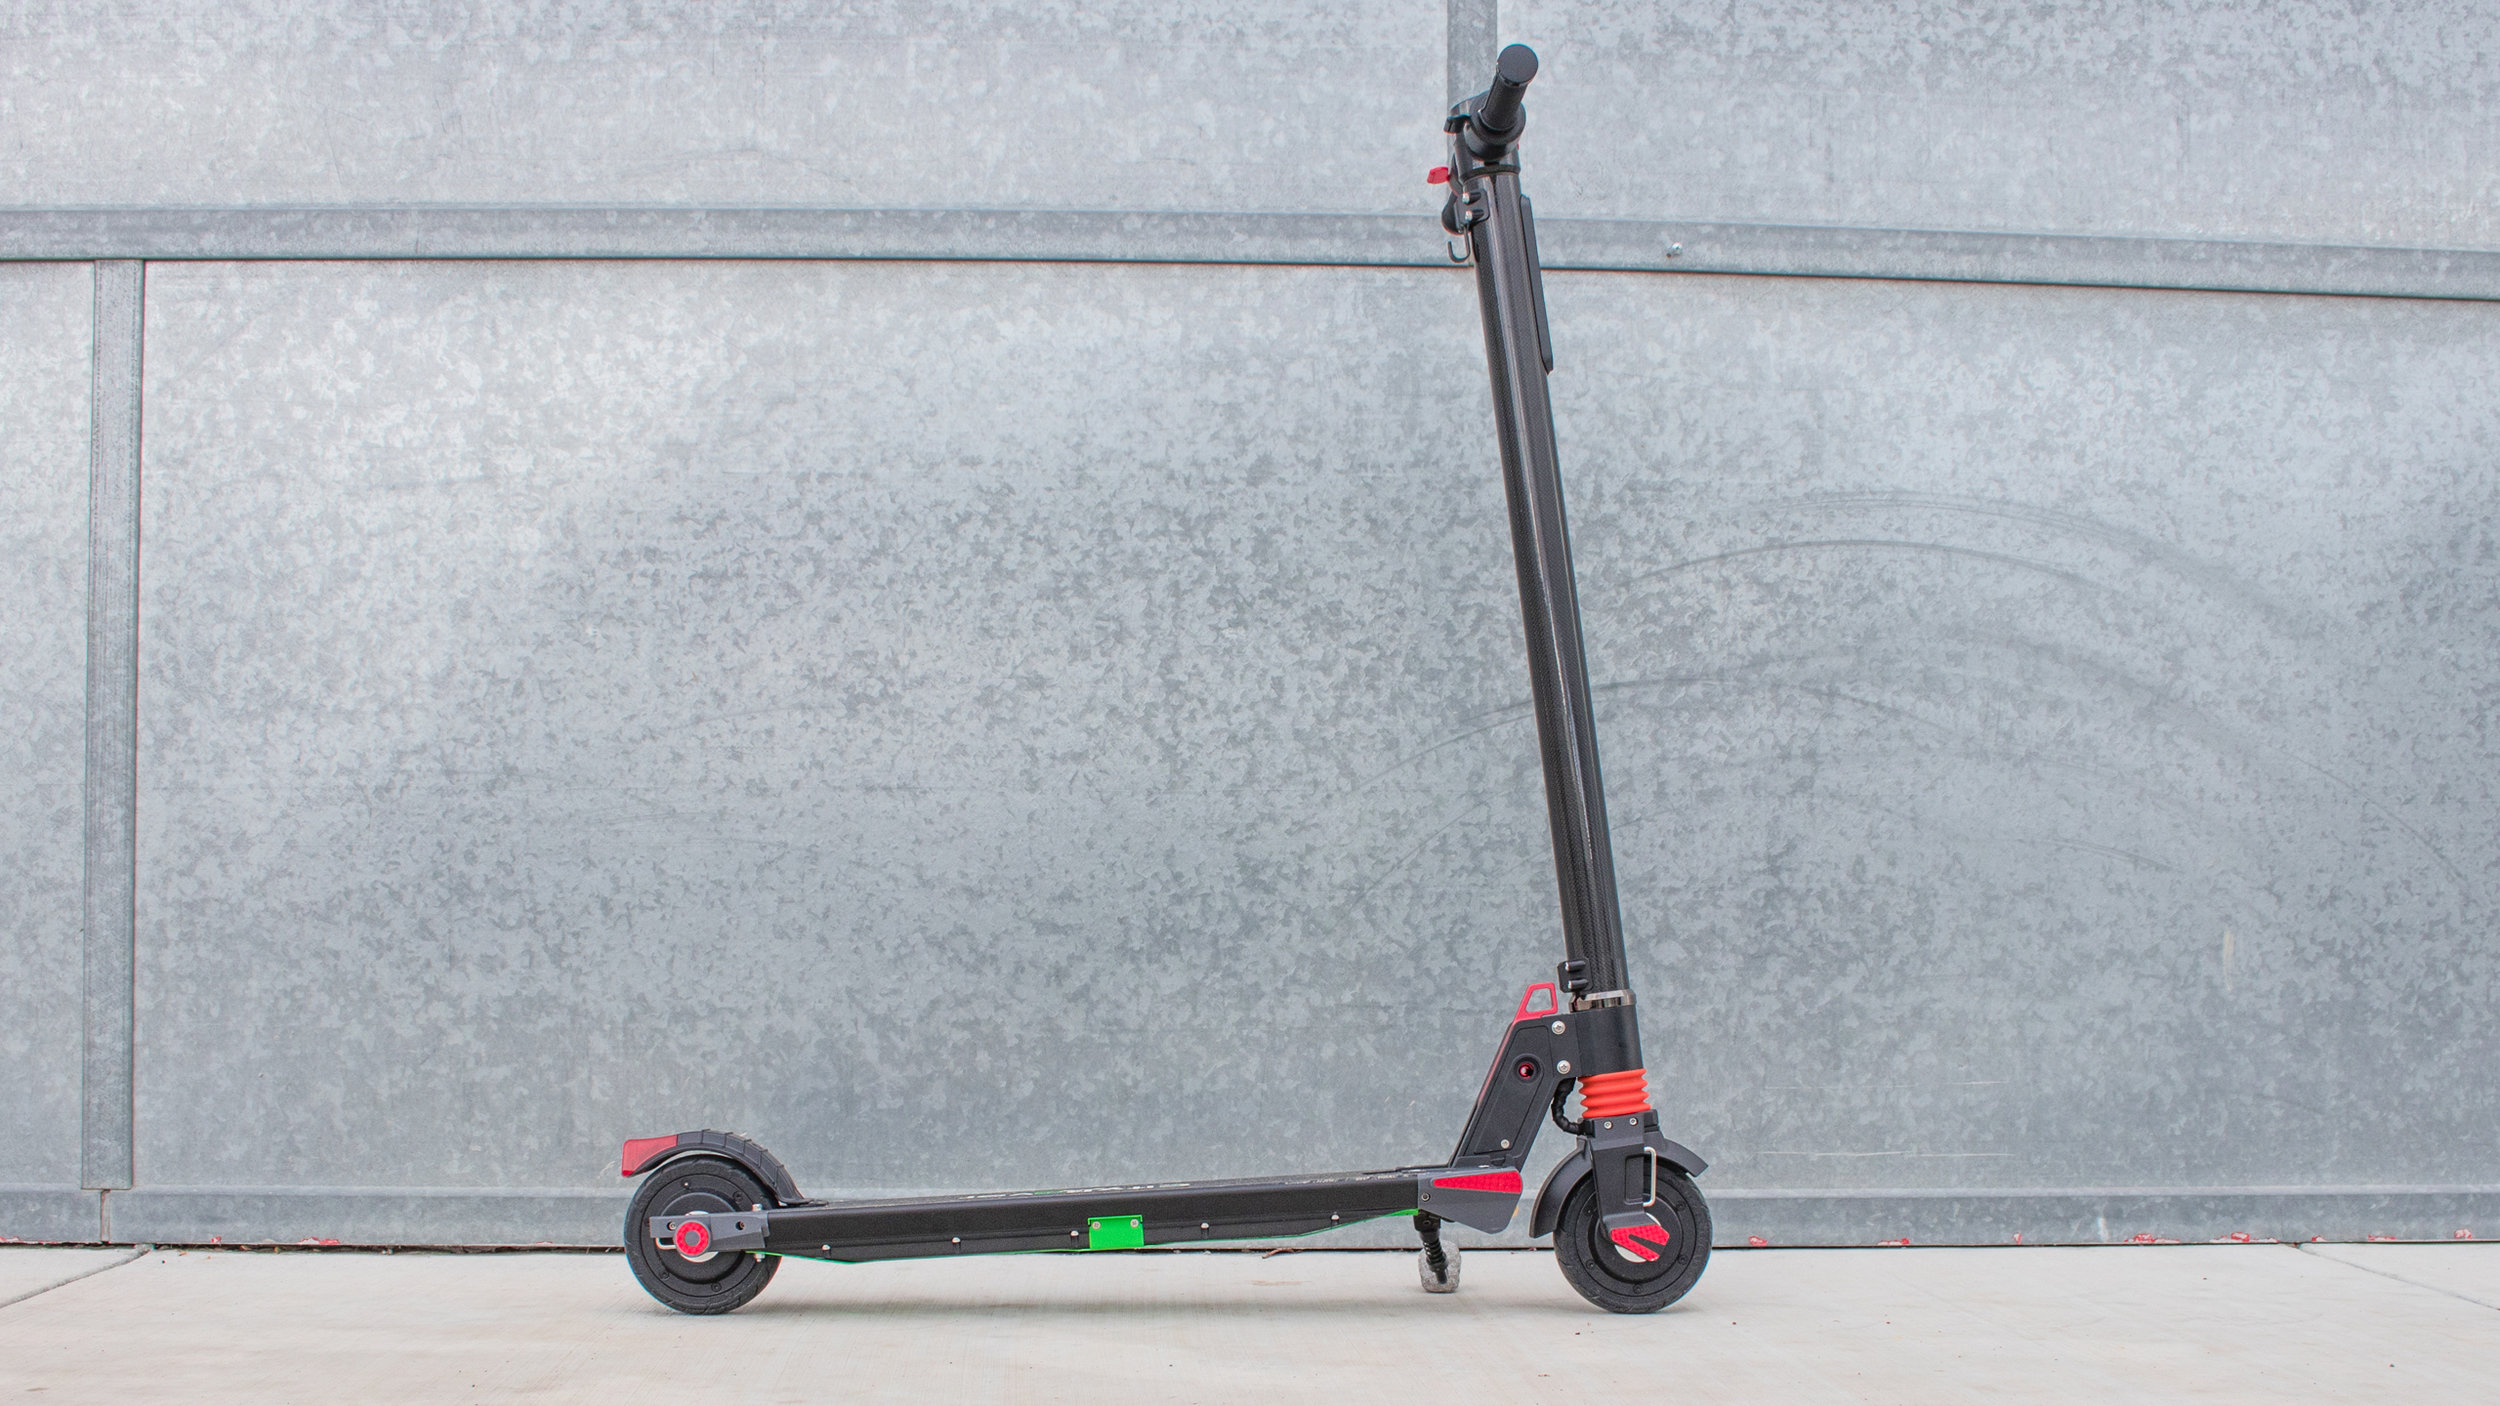 electrified-reviews-city-rover-s5-electric-scooter-review-profile.jpg